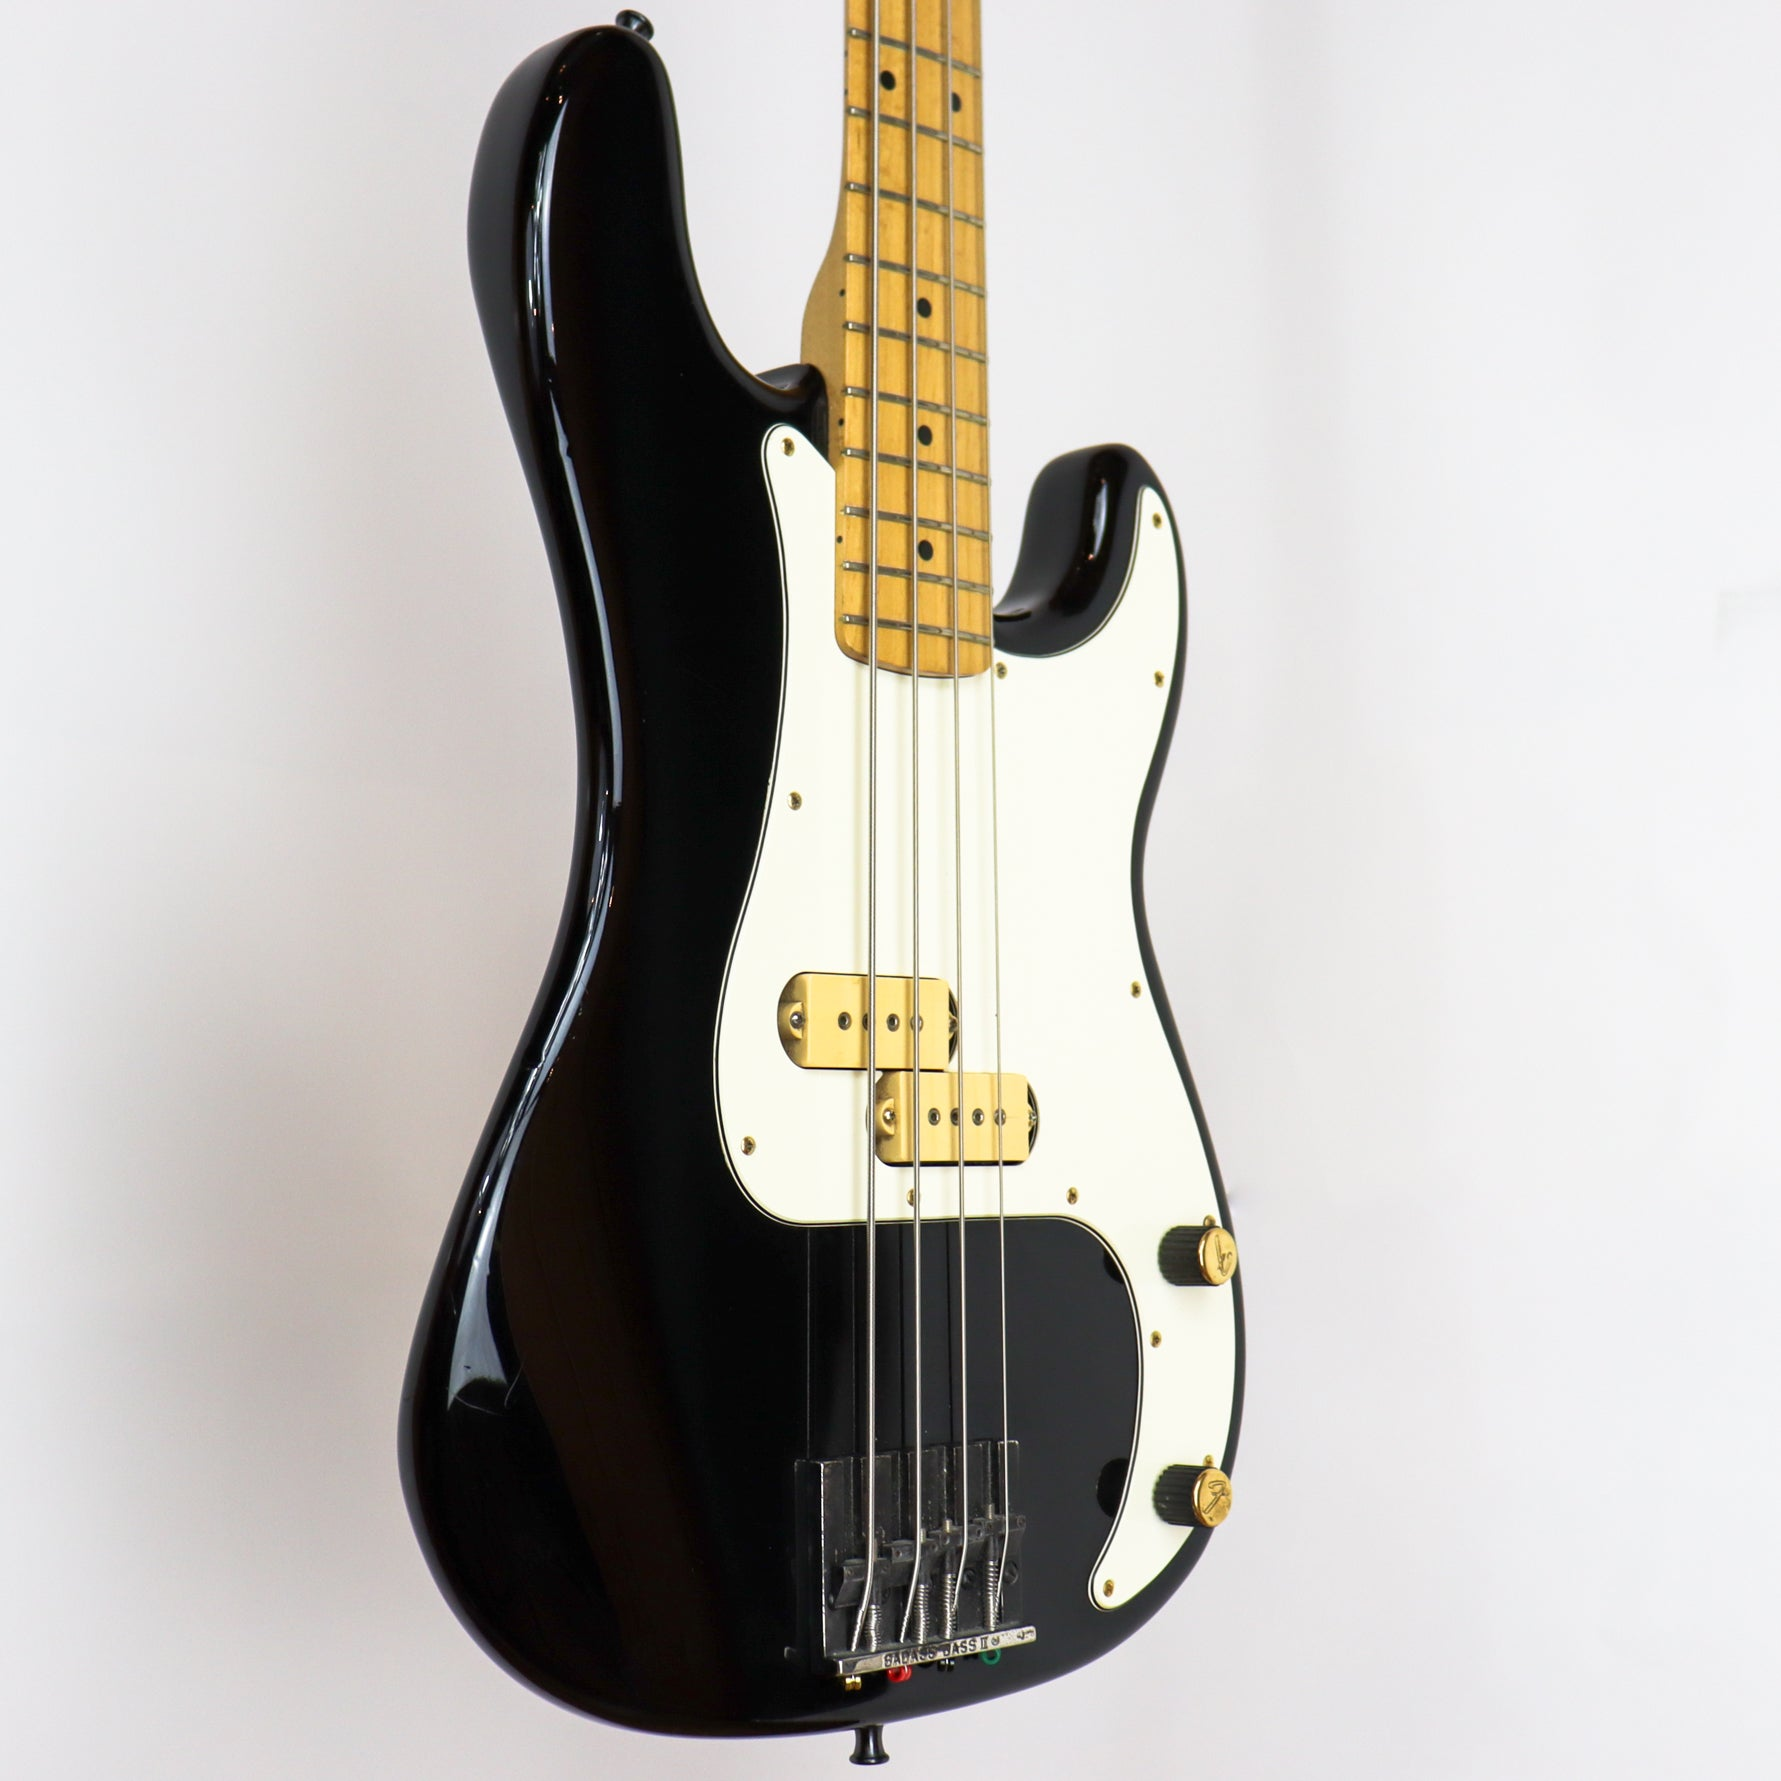 Fender 1983 Elite I Precision Bass Black w/gig bag